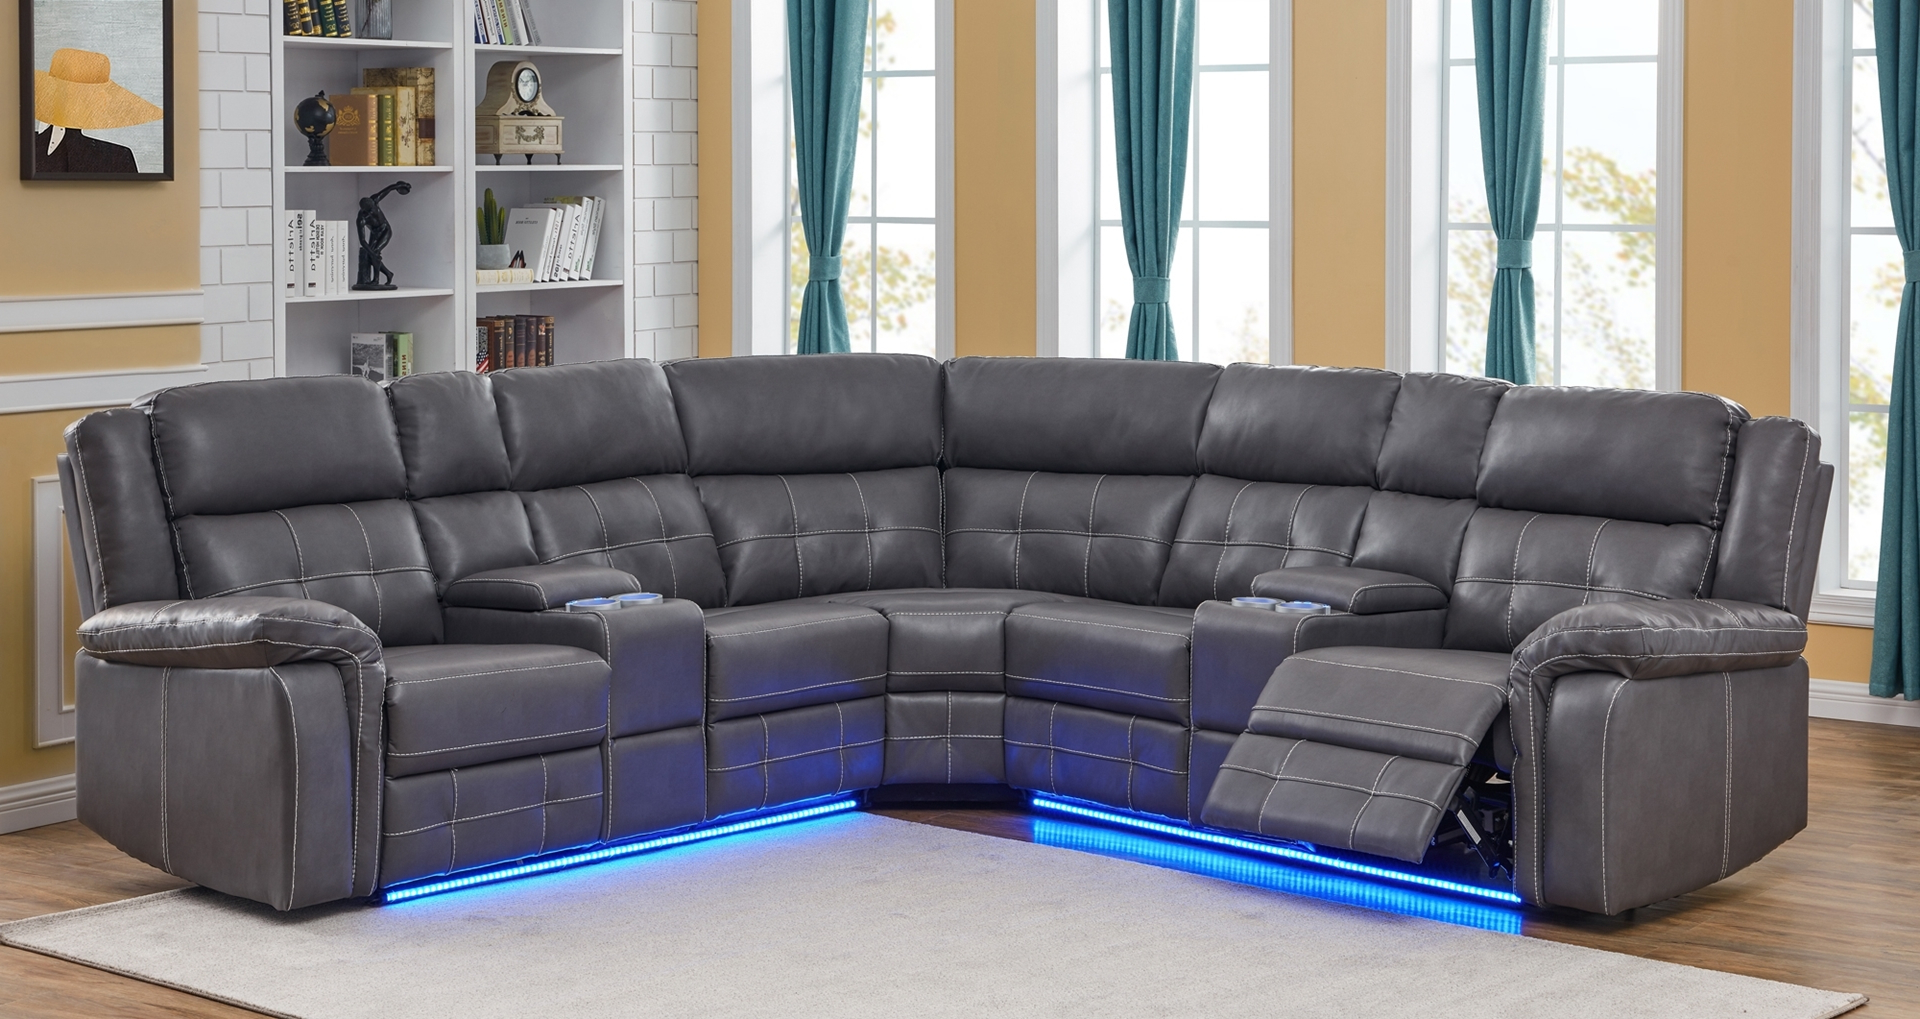 Cobalt Power/manual Reclining Sectional Sofa With Led Regarding Well Known Raven Power Reclining Sofas (View 15 of 20)